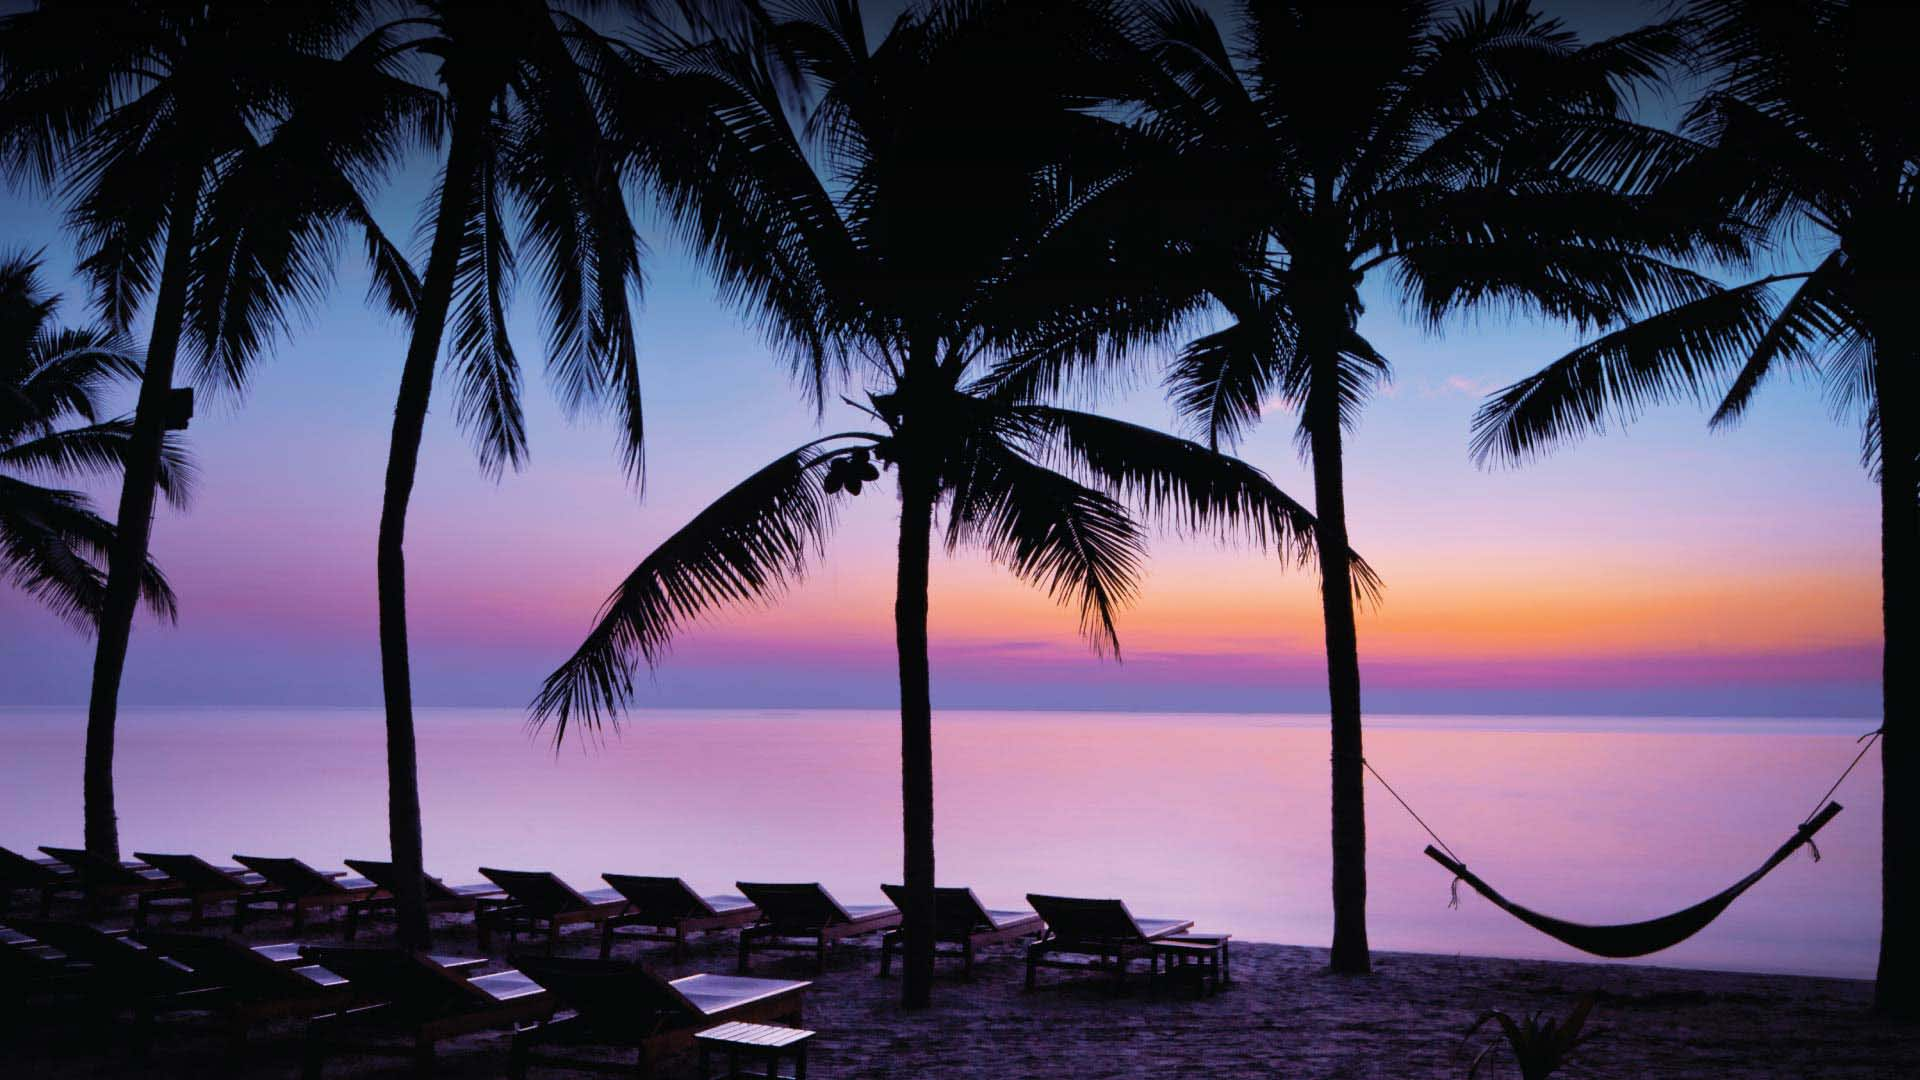 https://assets.anantara.com/image/upload/q_auto/media/minor/anantara/images/anantara-hua-hin-resort/the-resort/desktop-banner/anantara_hua_hin_beach_sunset_header_1920x1080.jpg